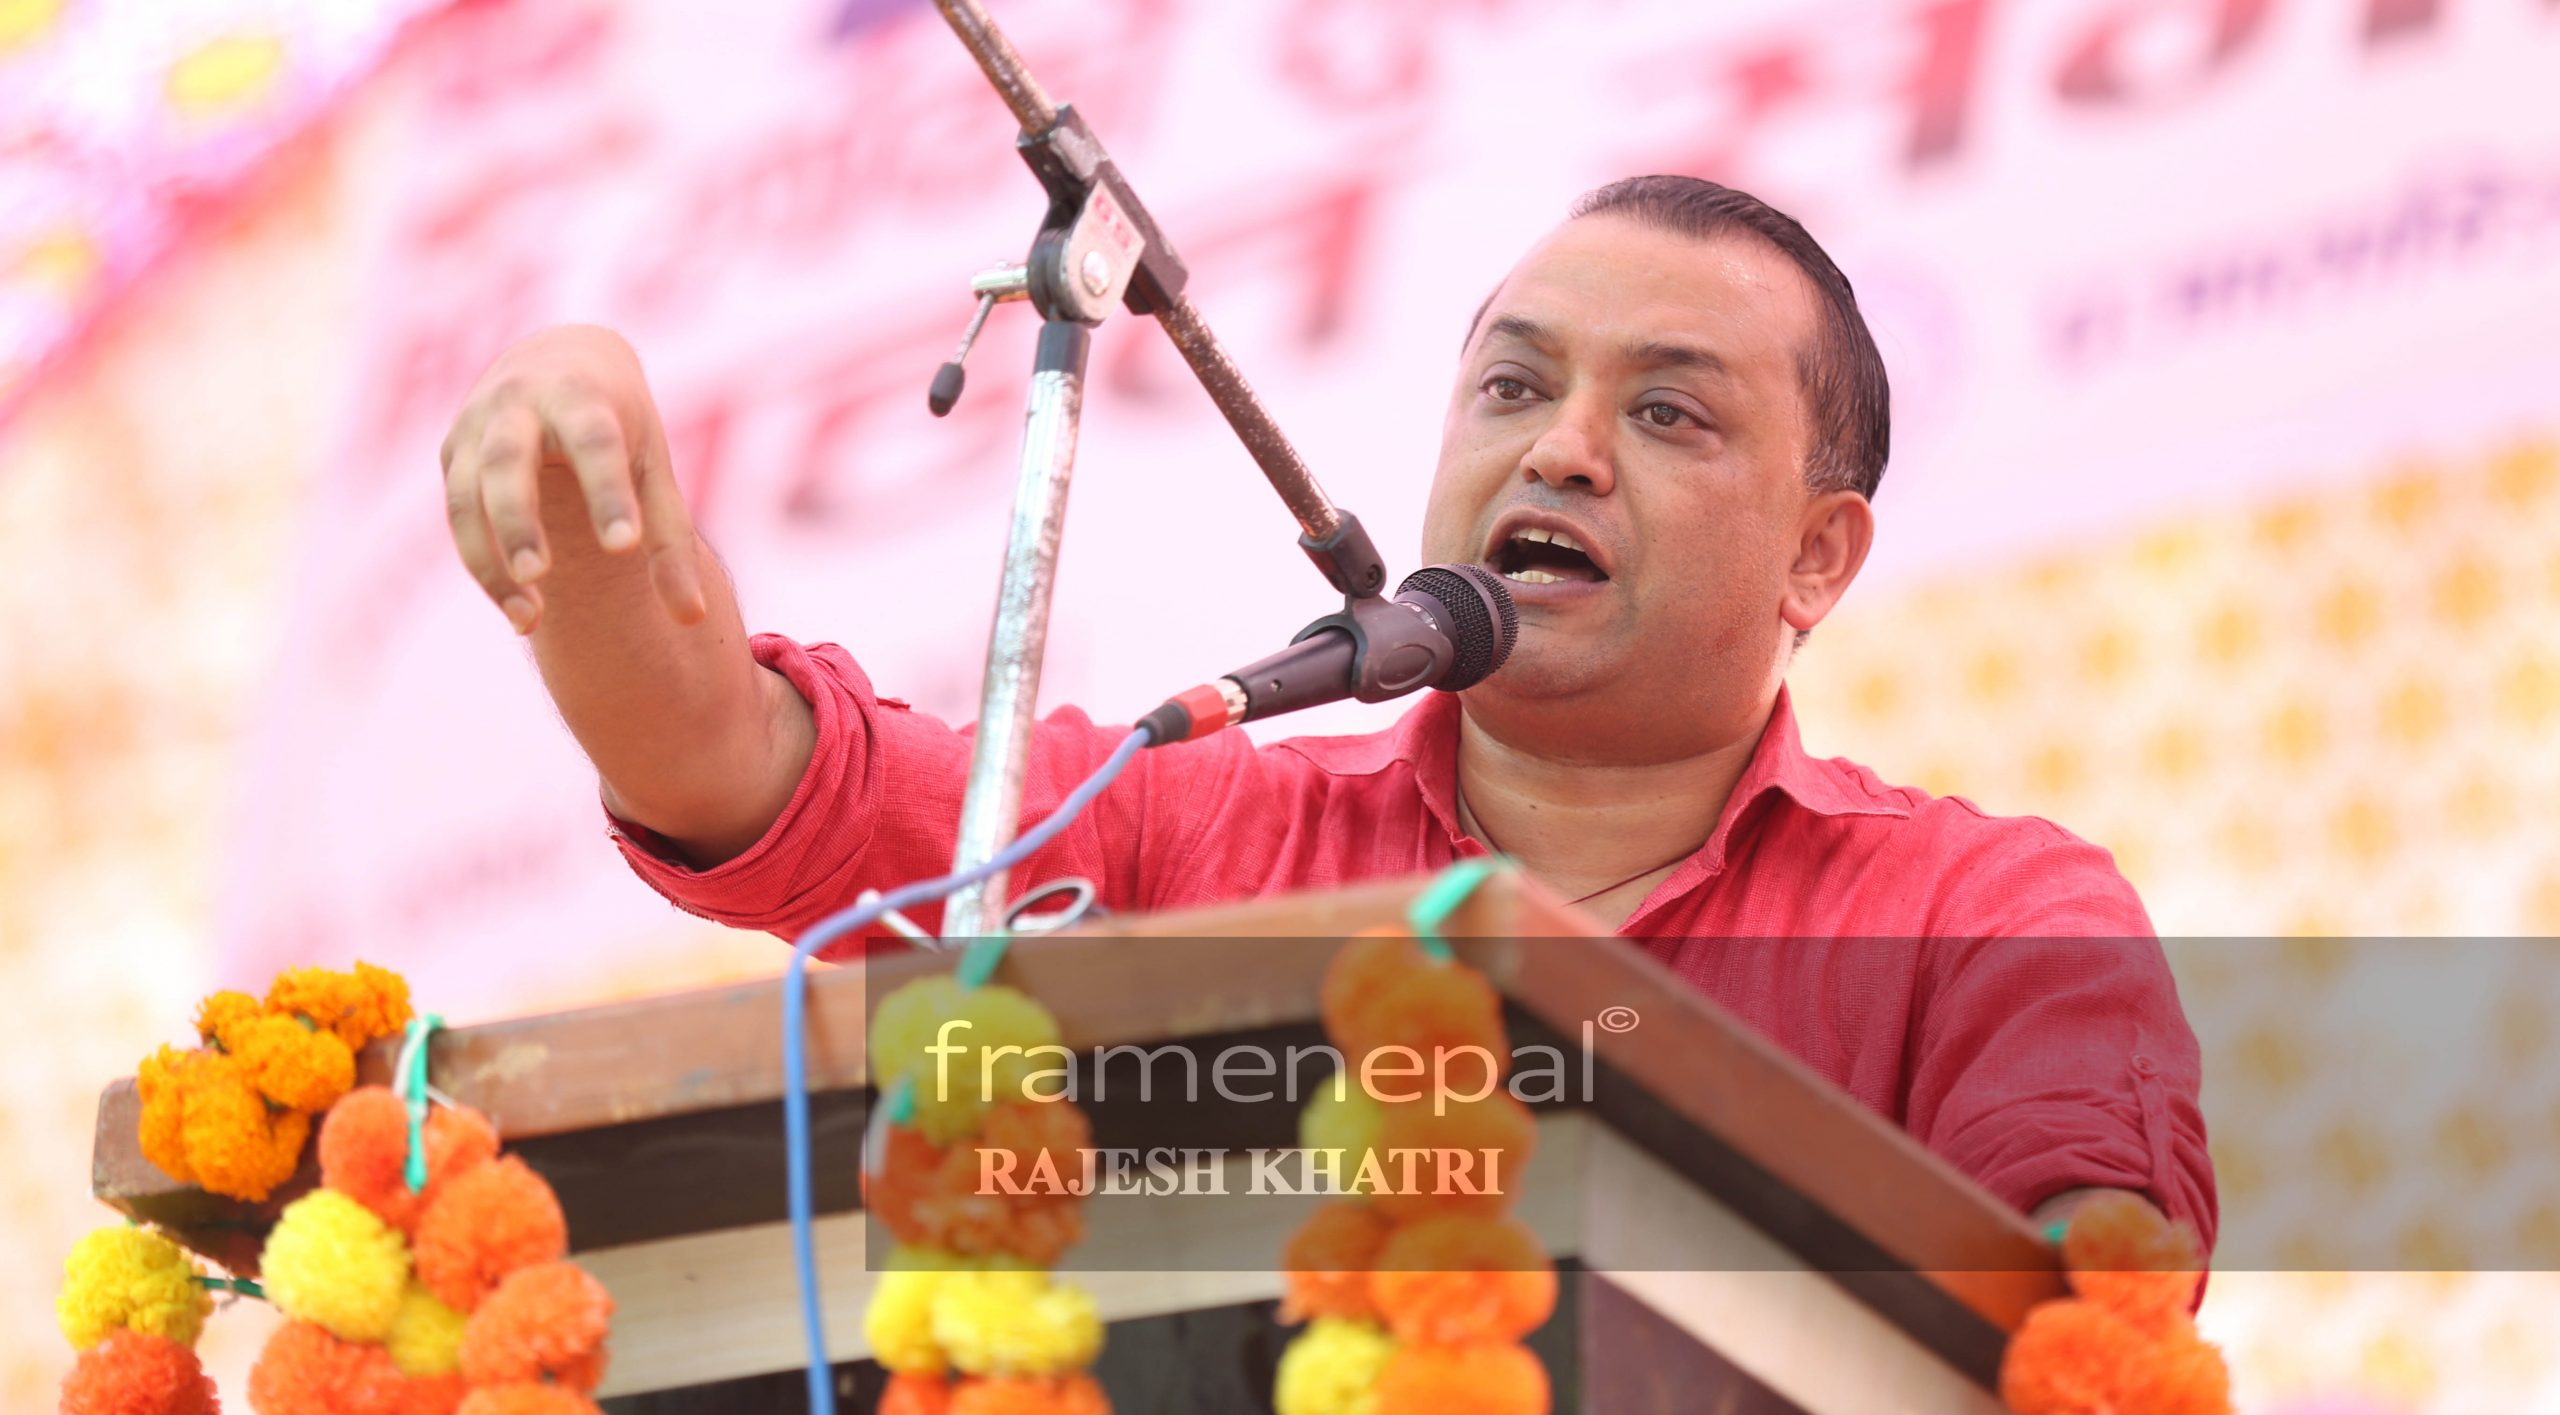 Gagan Thapa Best Images, Gagan Thapa is a Nepali politician and youth leader.He is a Central Committee Member of the Nepal Congress Party. Nepali Congress central leader Gagan Thapa. Gagan Thapa (Former Minister of Health and Population).